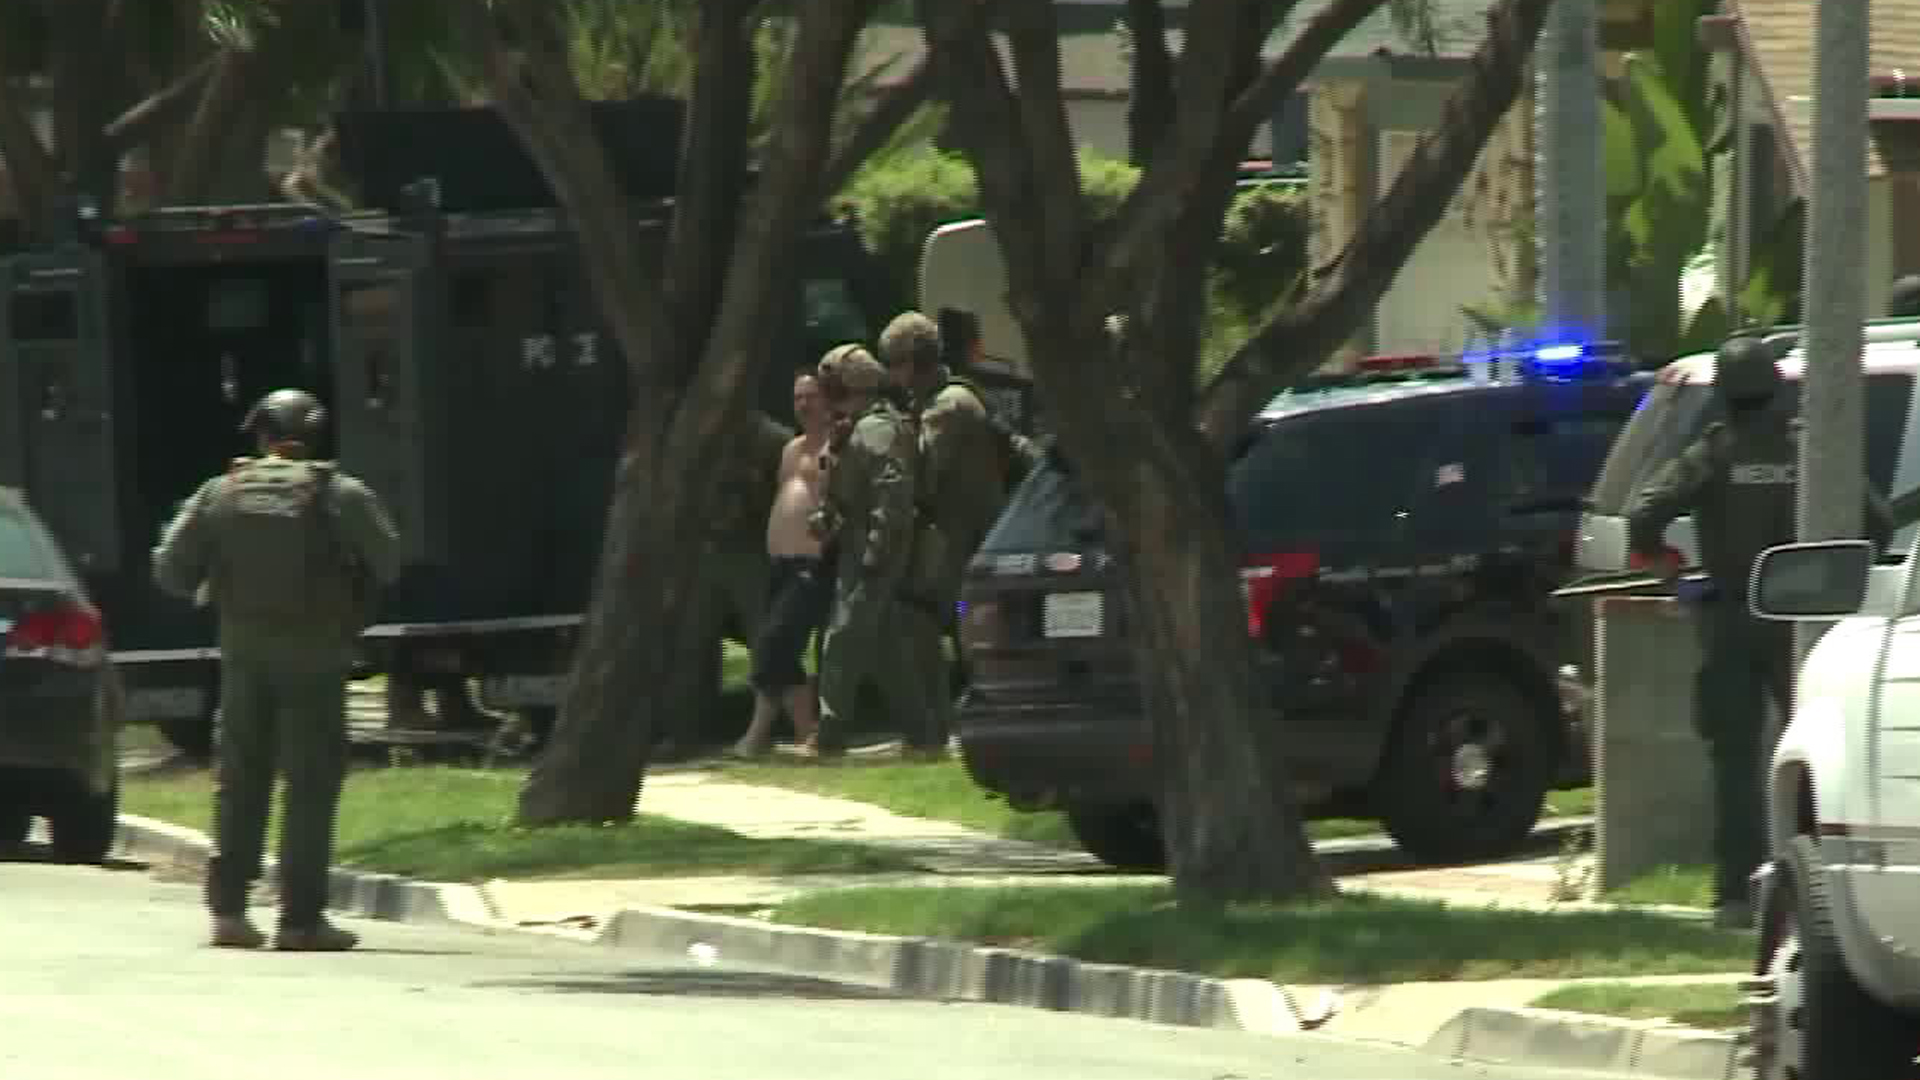 A man is taken into custody following a three-hour standoff with police and SWAT officers in a Brea neighborhood on June 8, 2018. Officers responded after a report of an assault on a 63-year-old woman across the street. (Credit: KTLA)